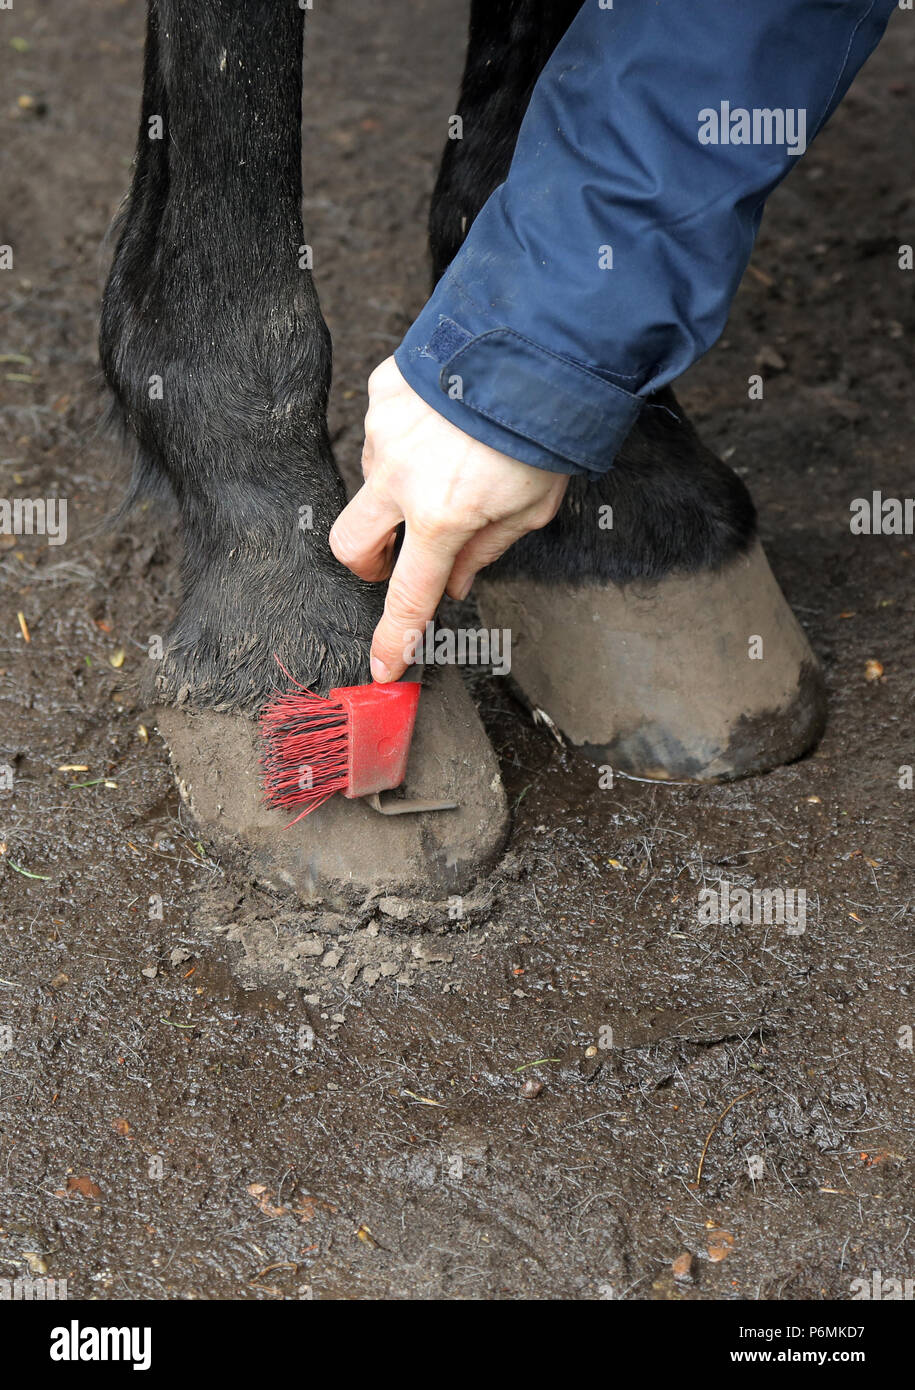 Melbeck, Barhoof is freed from dirt with a hoof scraper - Stock Image